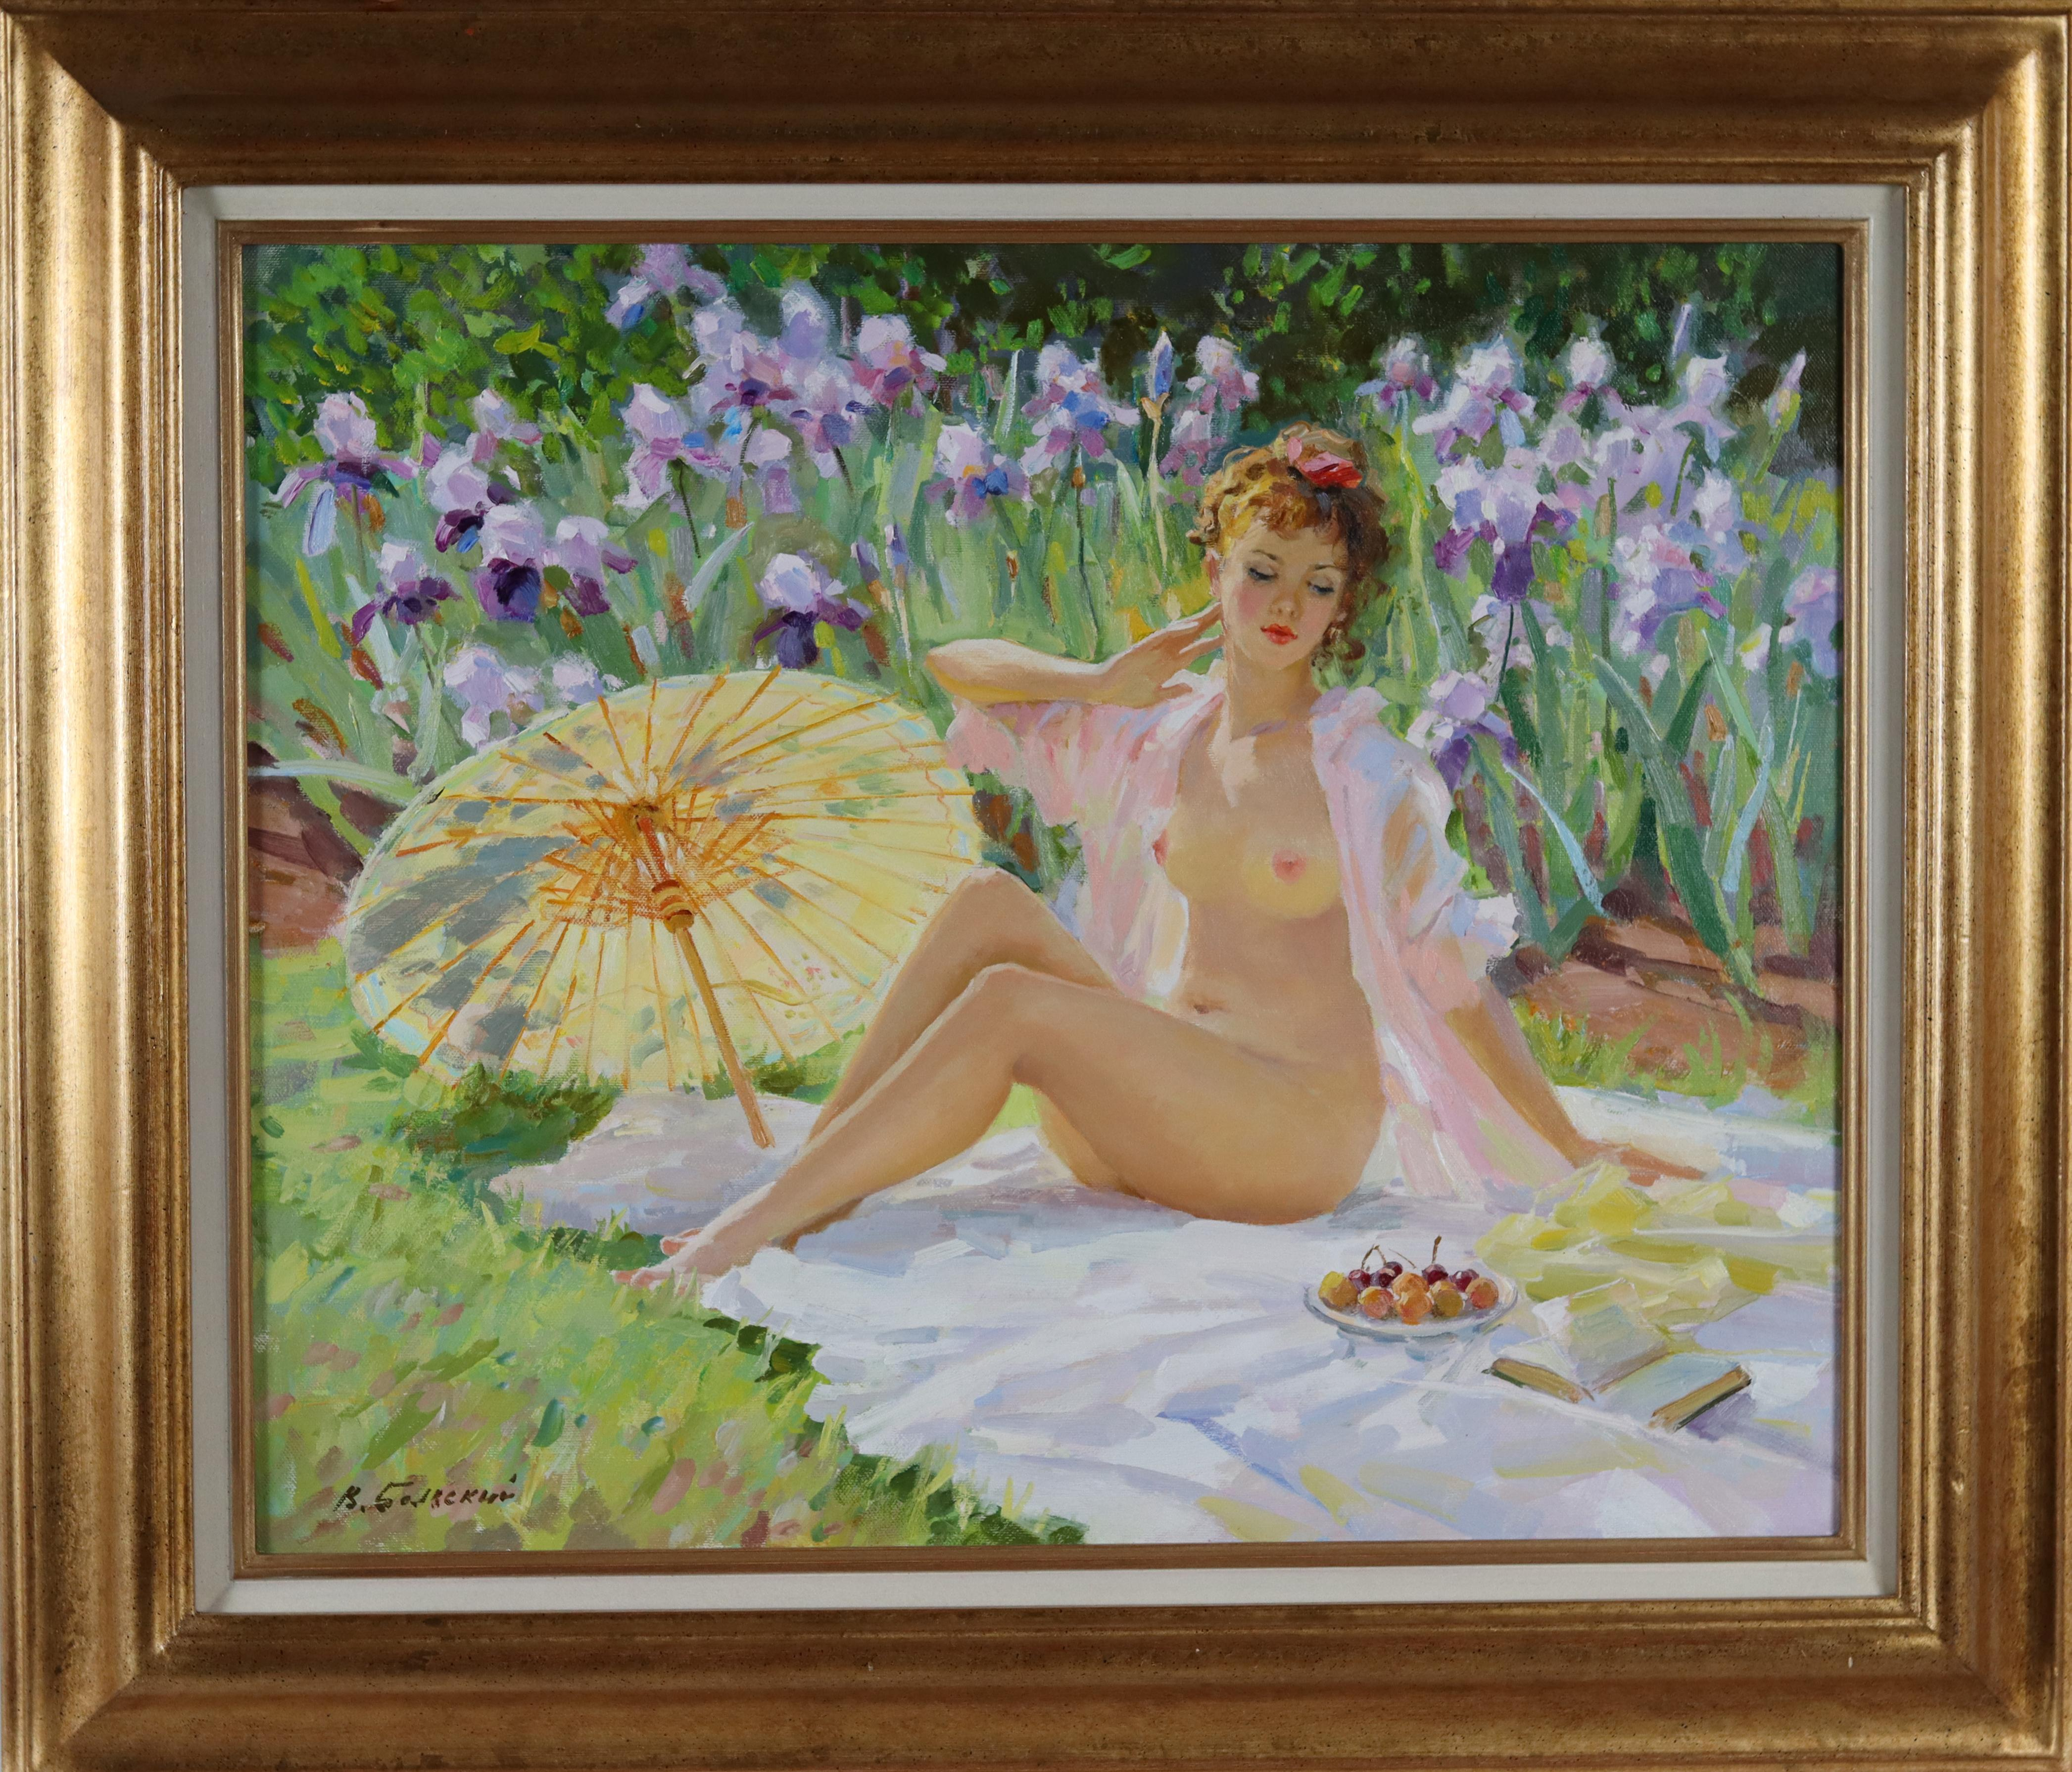 A Nude with a Parasol, sitting on a Rug next to Irises